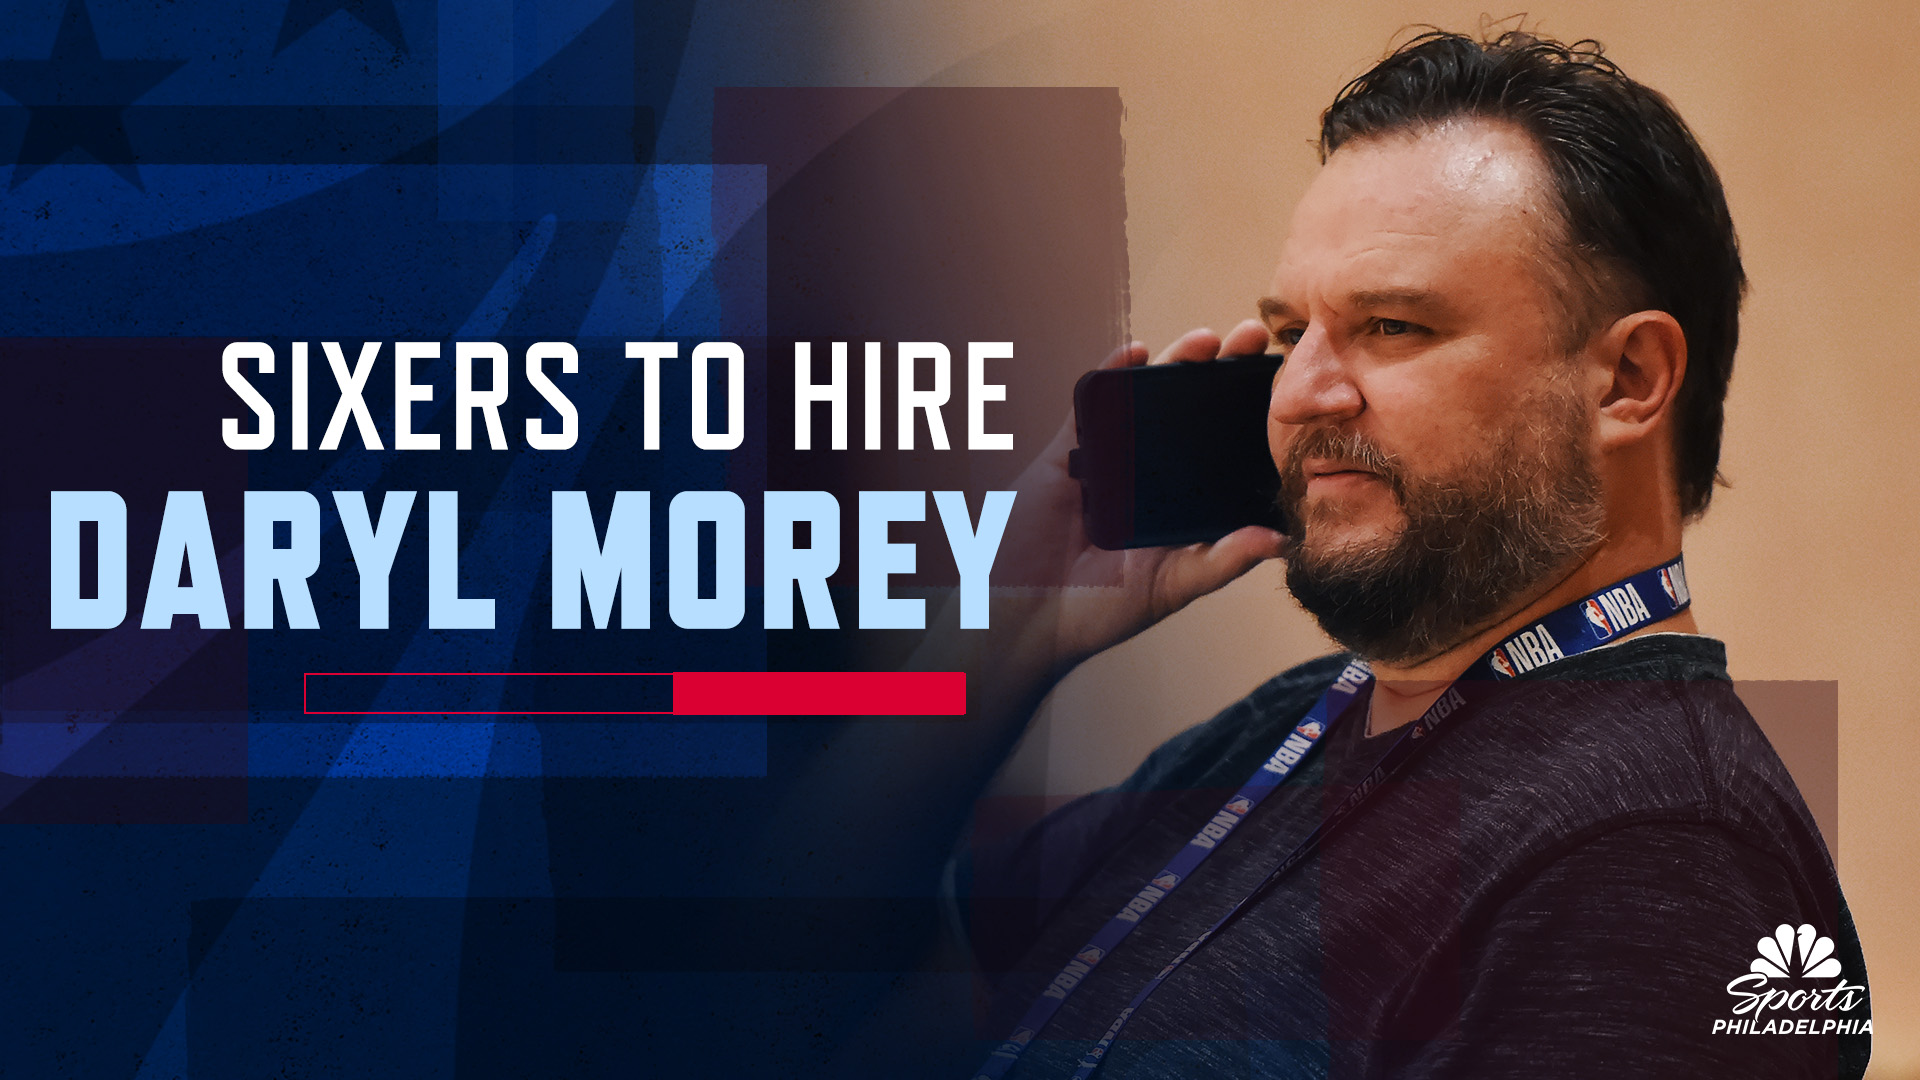 Details behind the Sixers' quick decision to pursue Daryl Morey